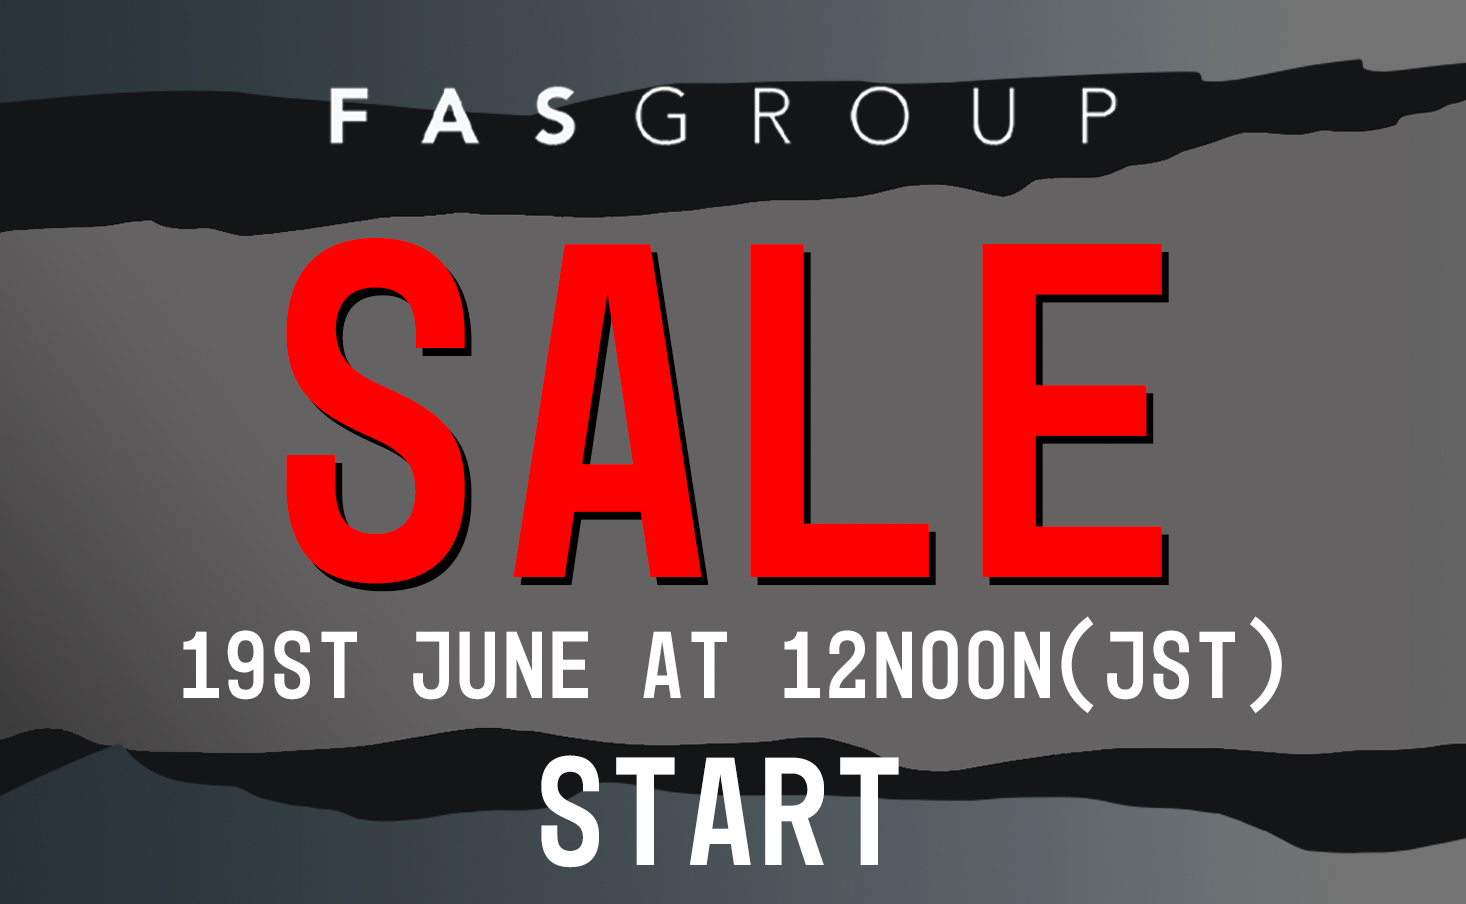 The sale will start at 12 noon on Saturday, June 19 on the online site and in stores!